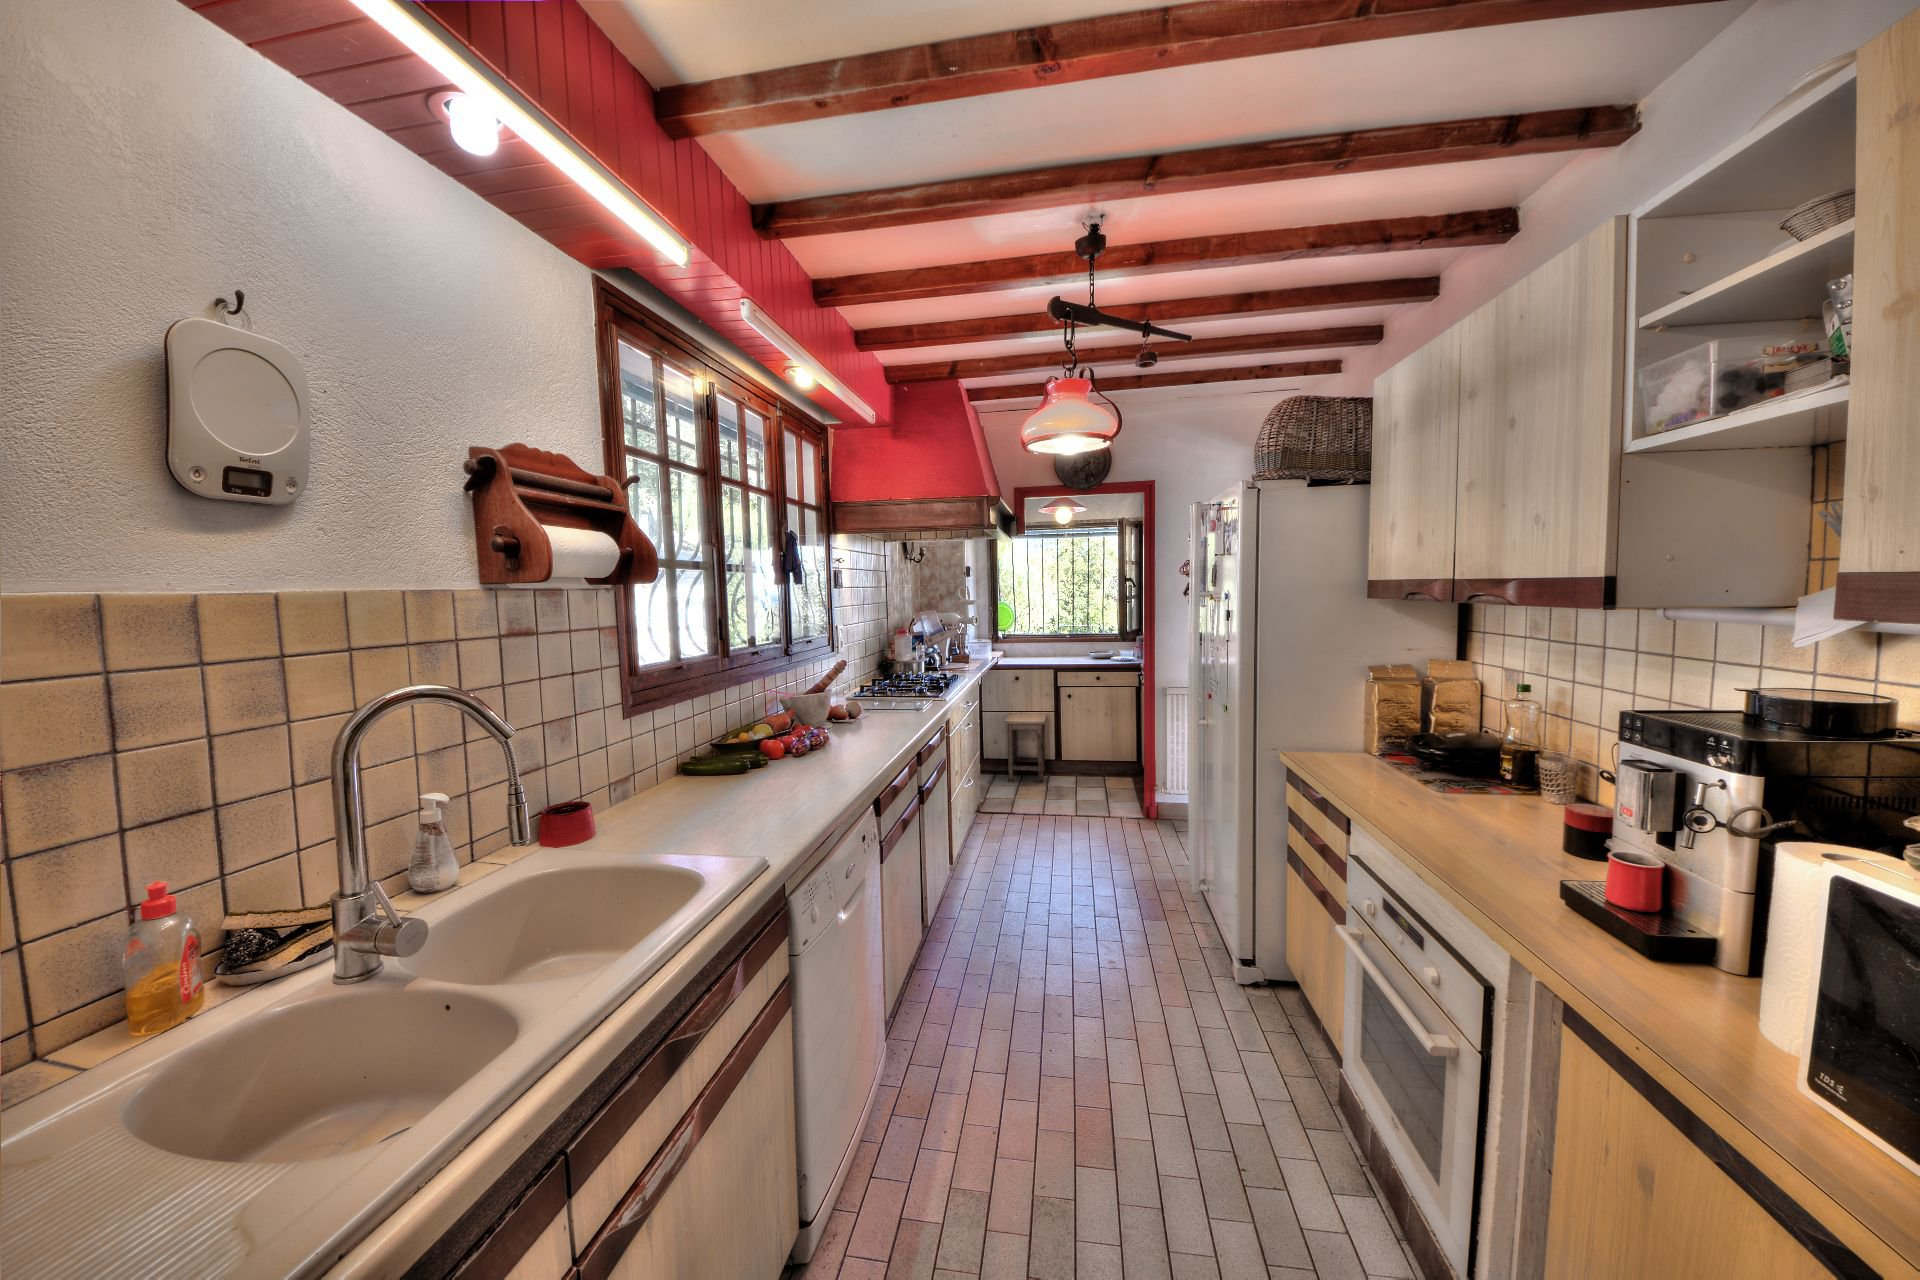 Kitchen of the villa 240 m² 4 apartments Lorgues, Provence, Paca